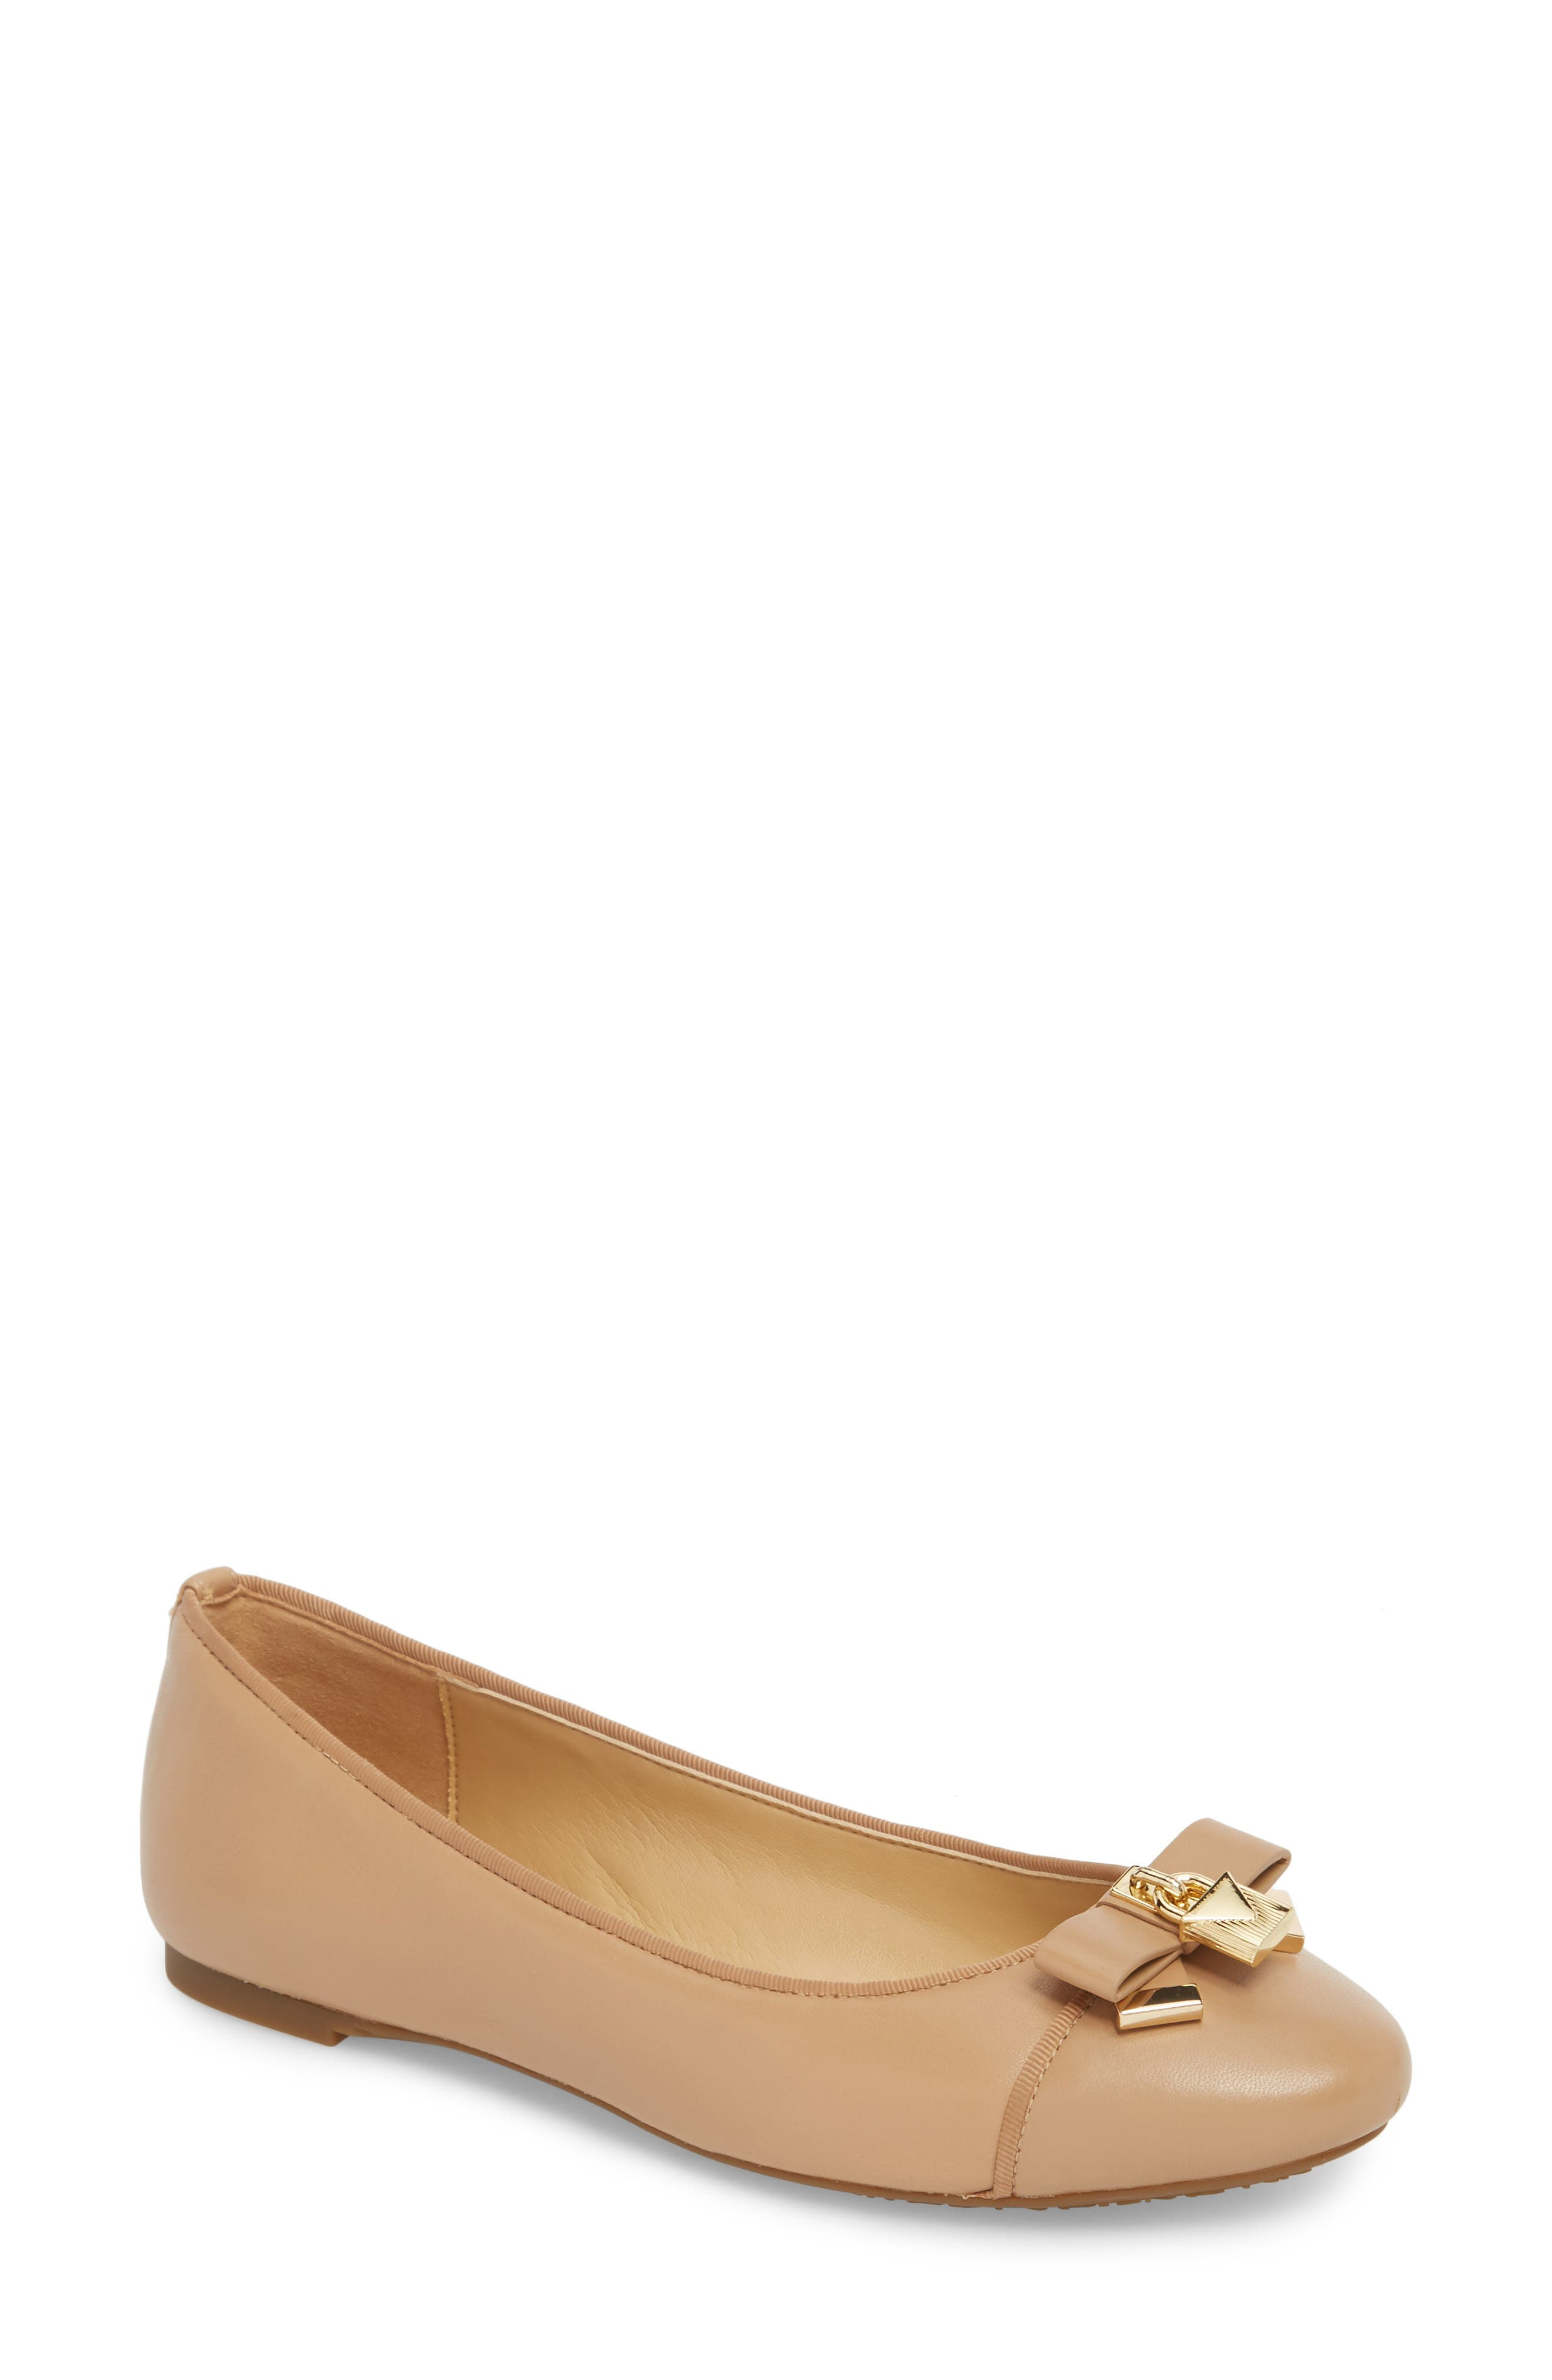 Alice Ballet Flat, Toffee Leather